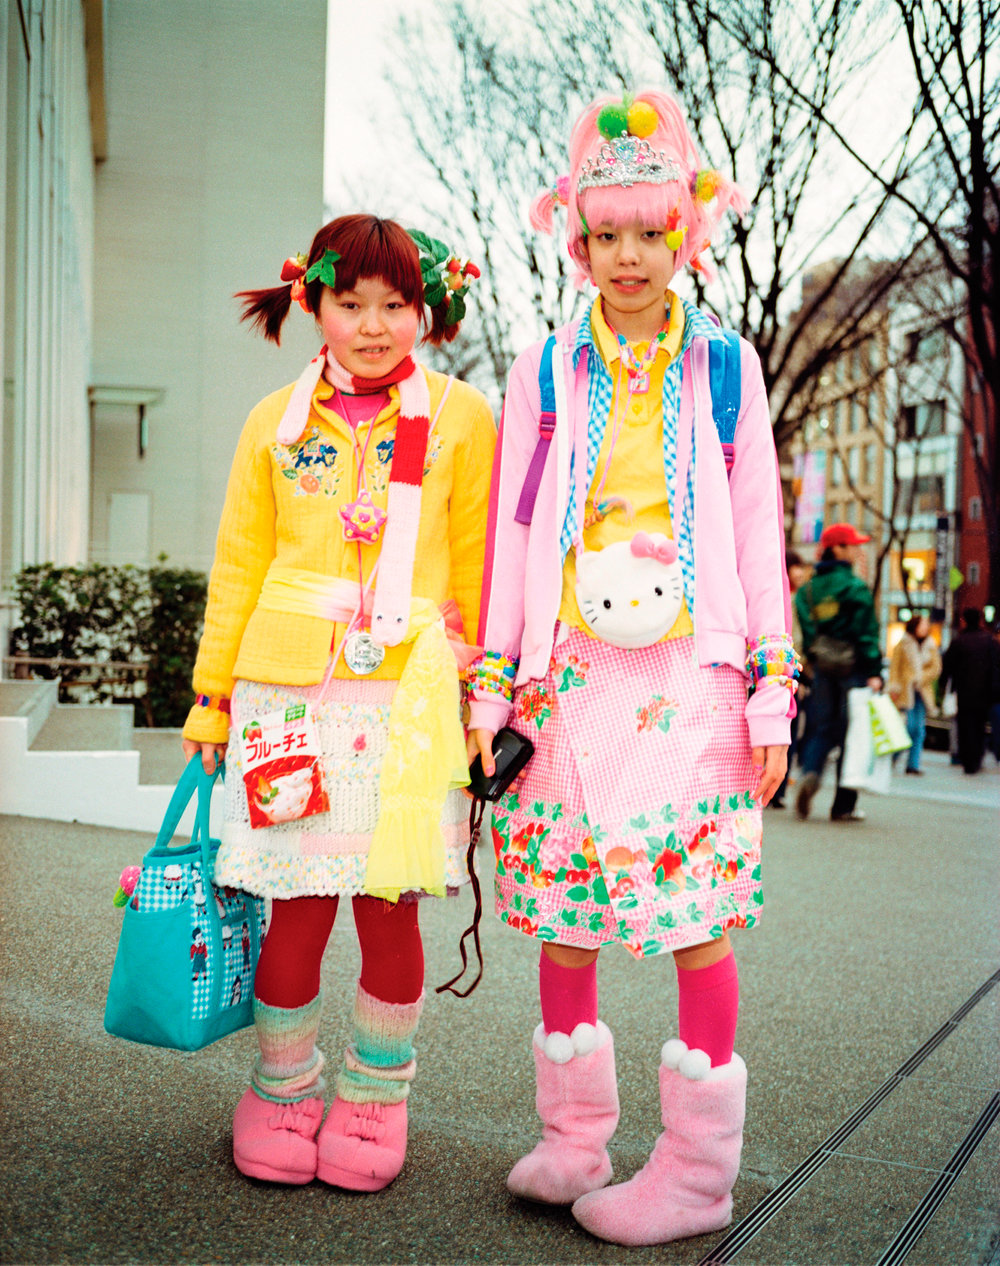 Two young girls dressed in Hello Kitty merchandise, Tokyo, Japan, 2000. Photo by Ben Knight.